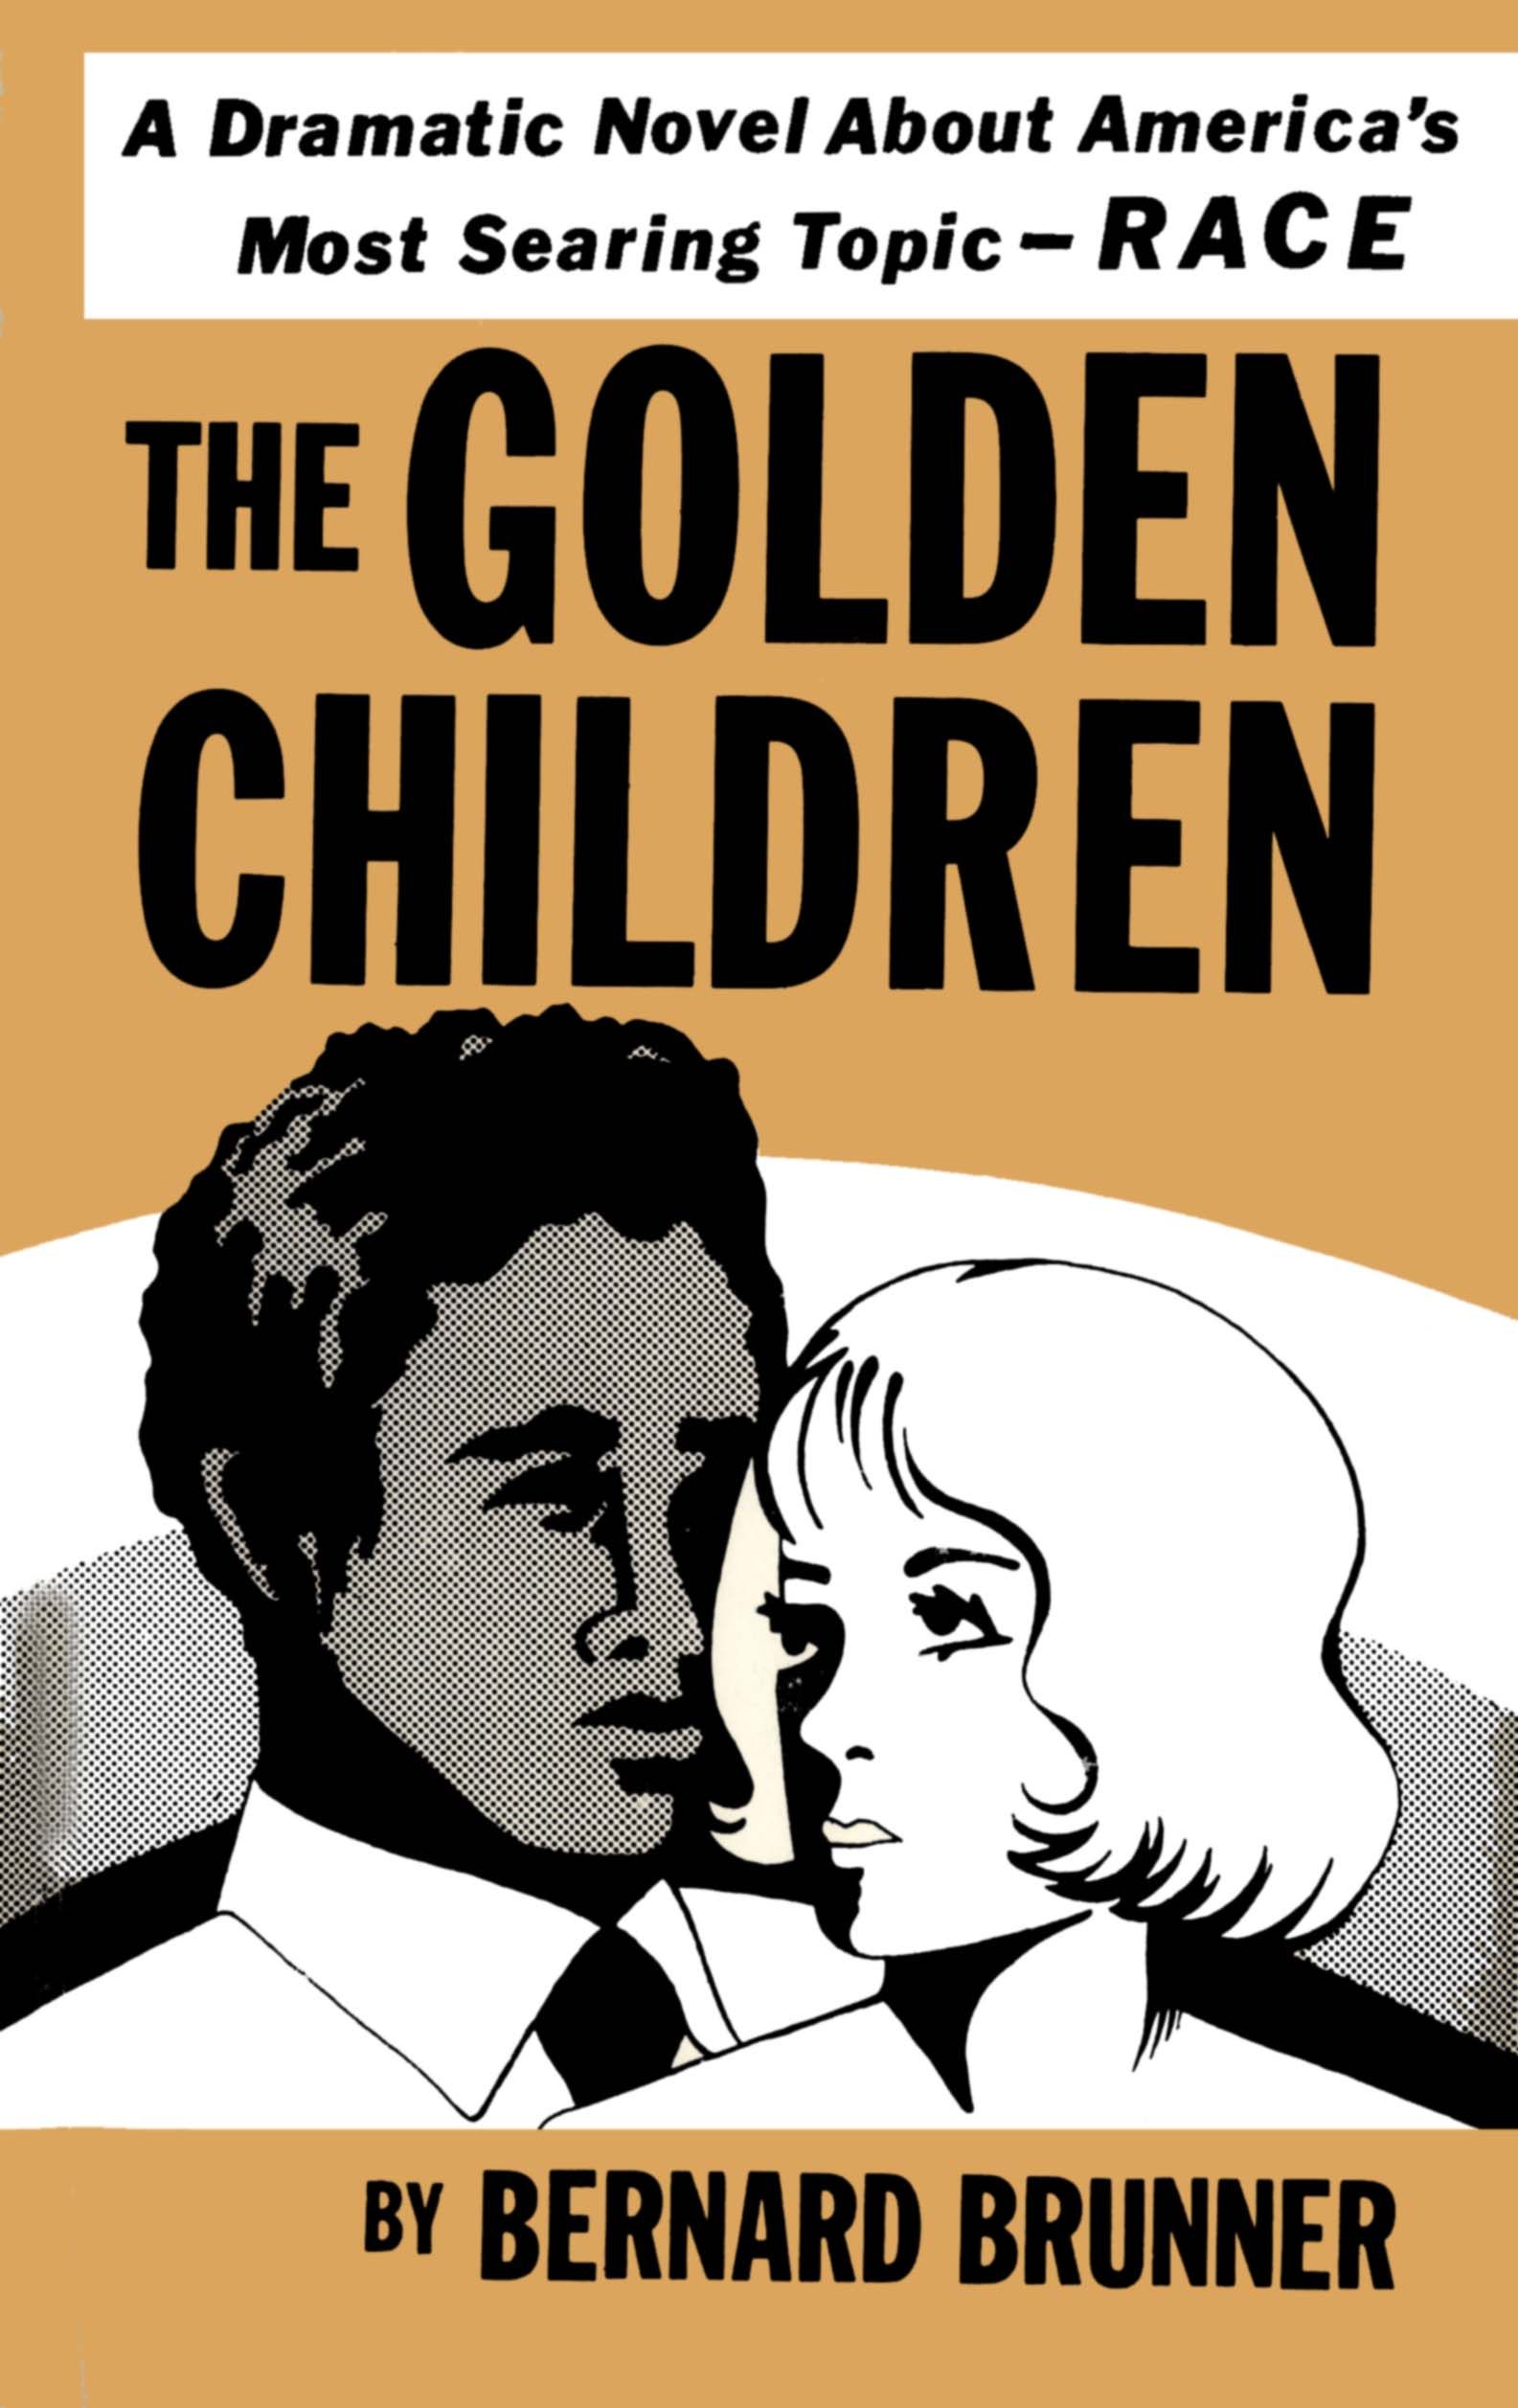 The Golden Children